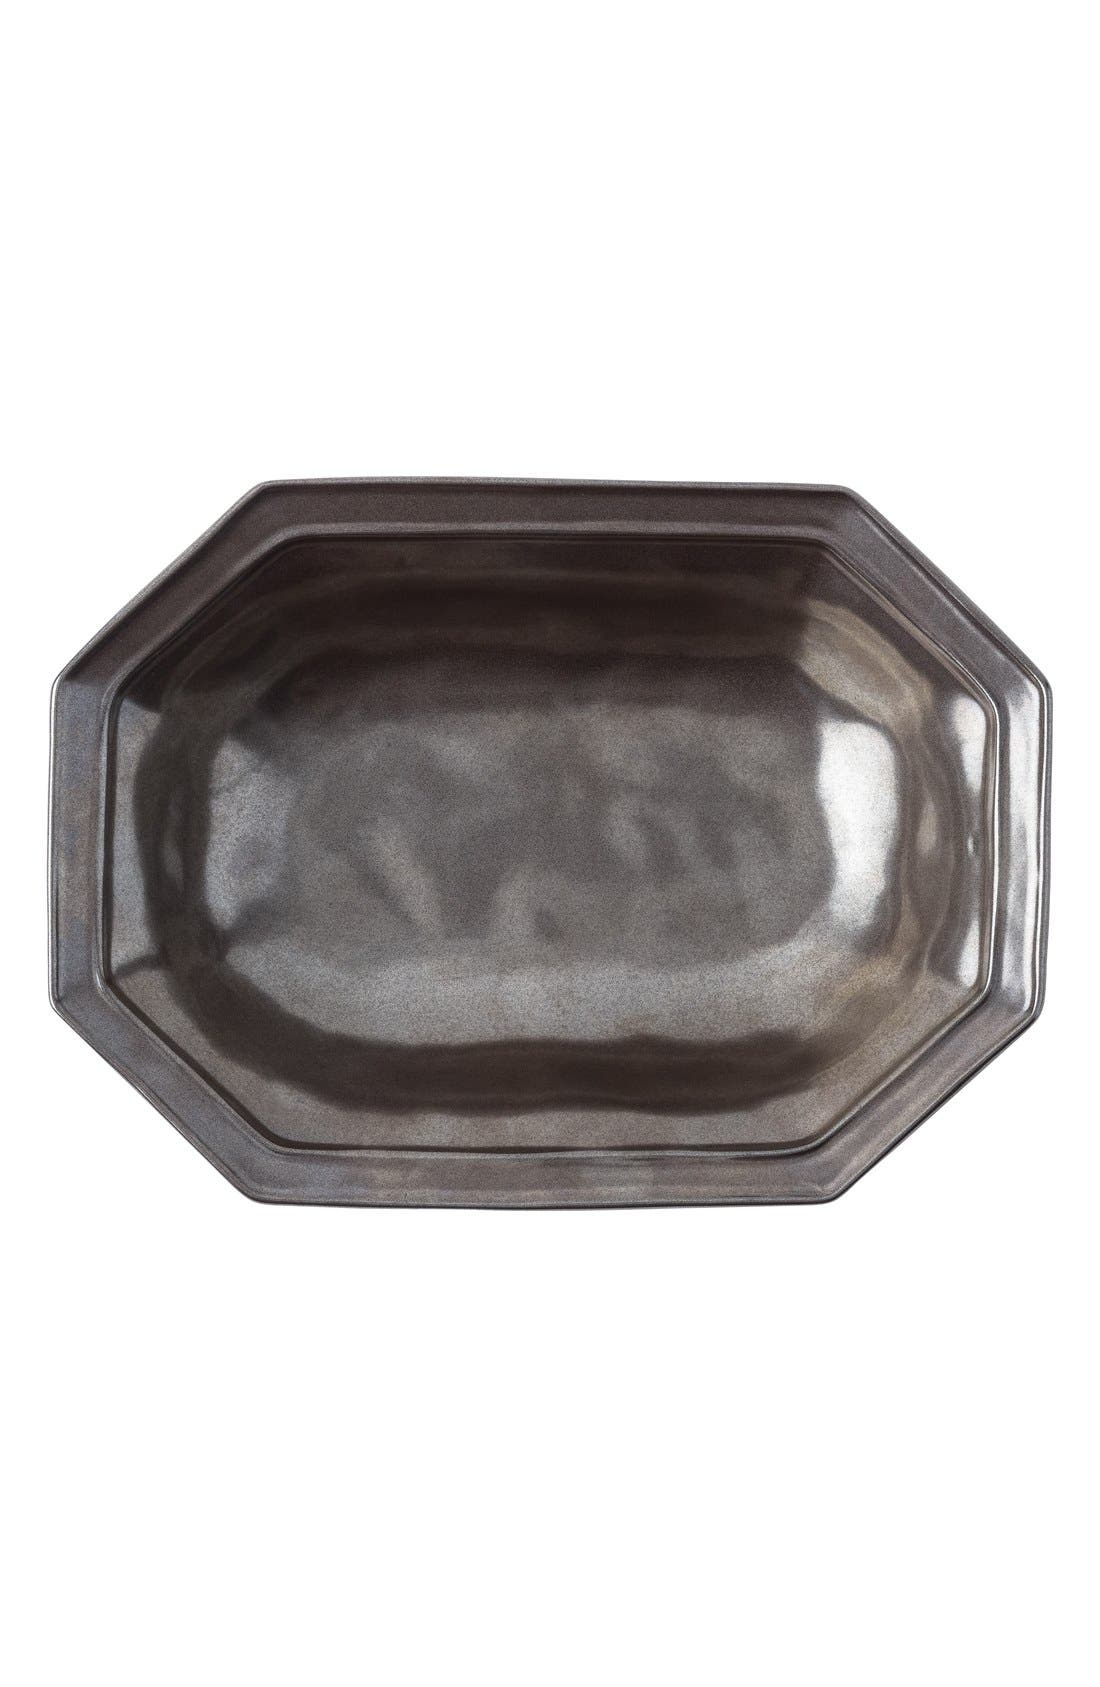 Juliska Pewter Stoneware Octagonal Serving Bowl